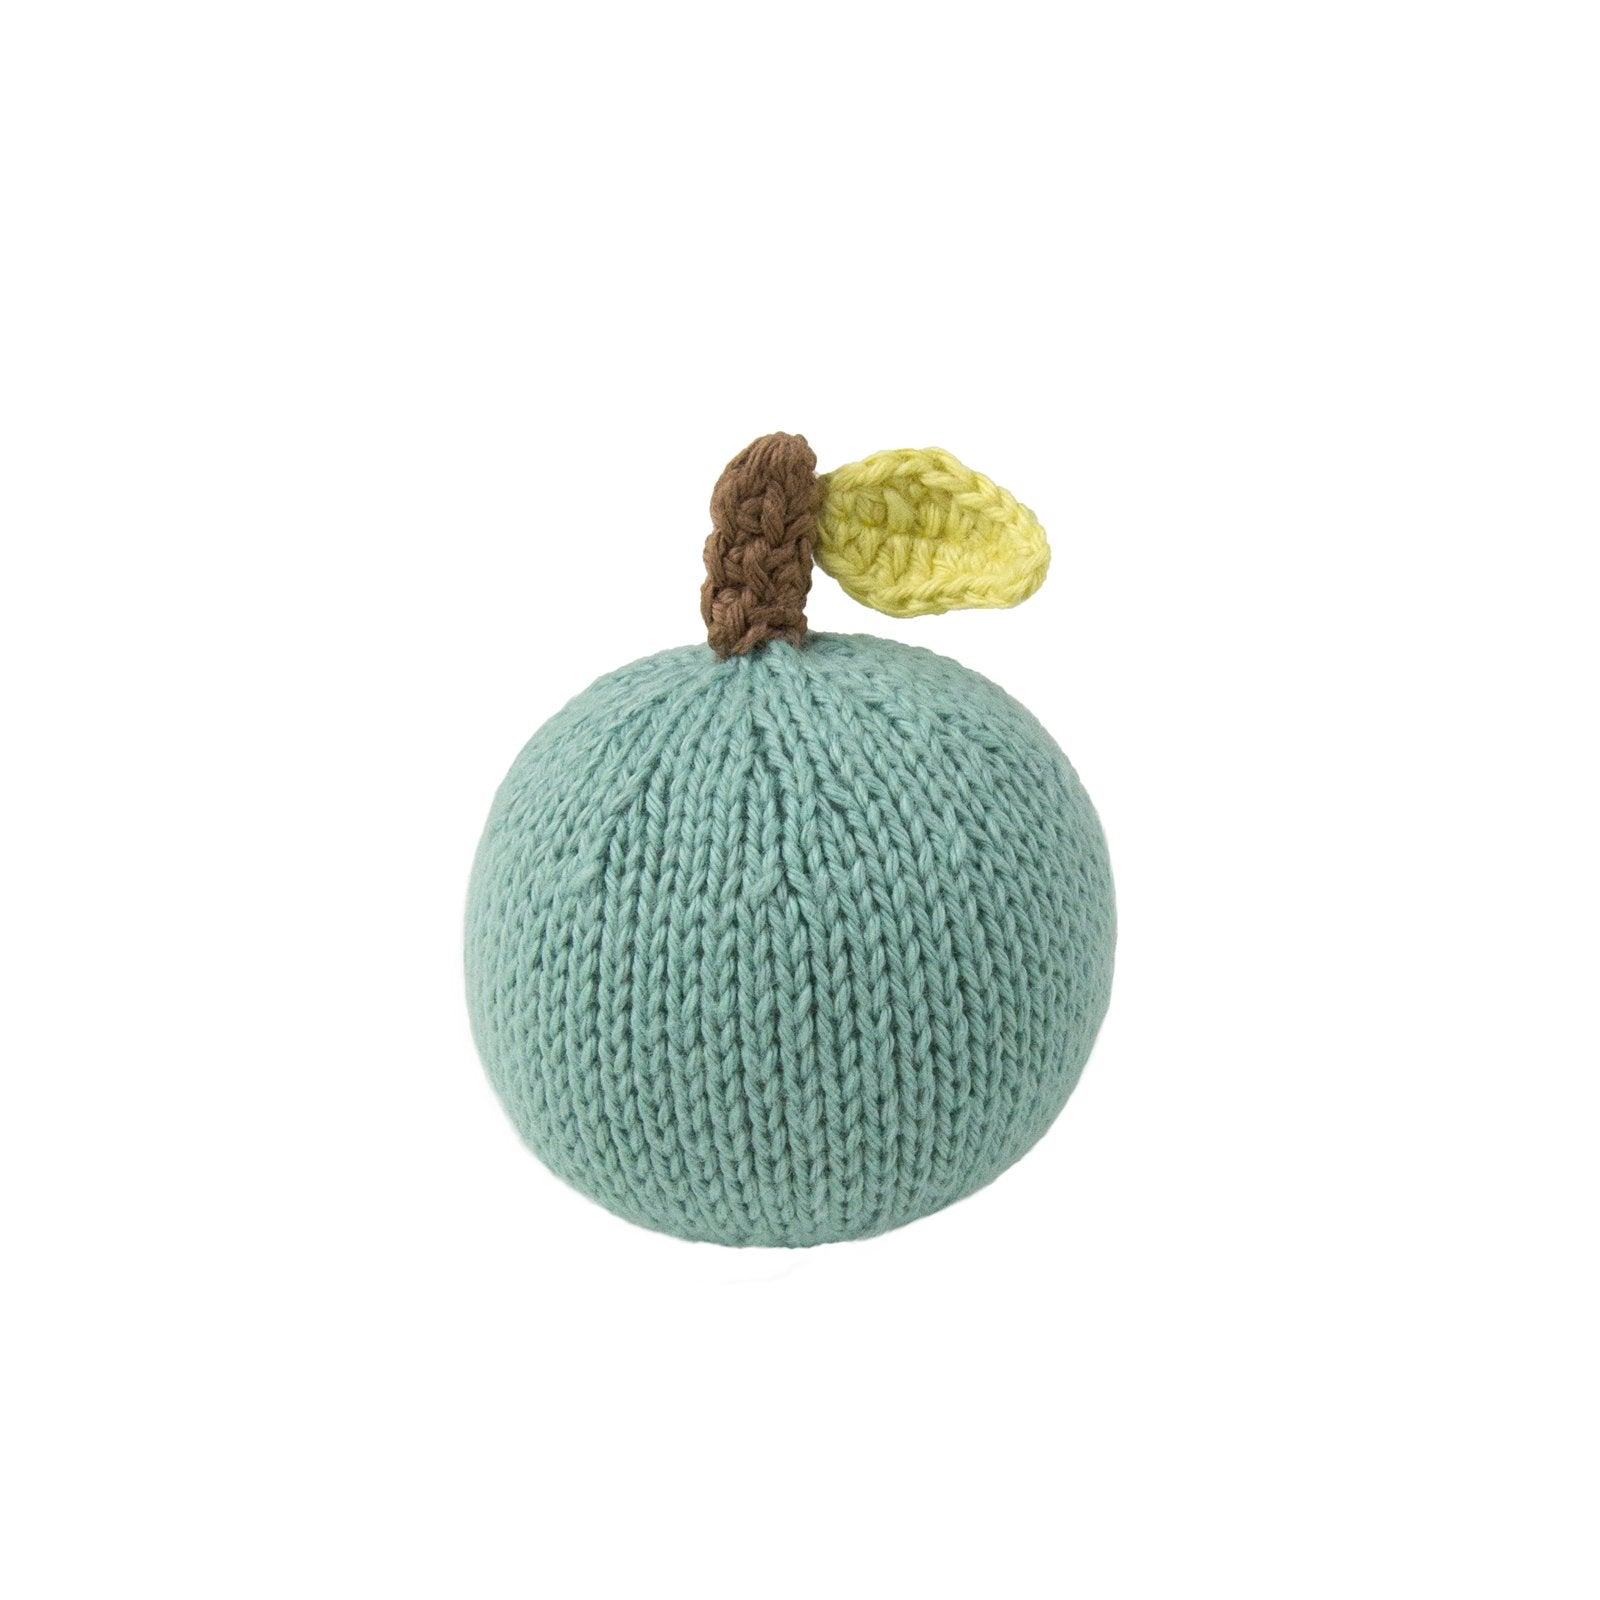 Knit Apple Rattle